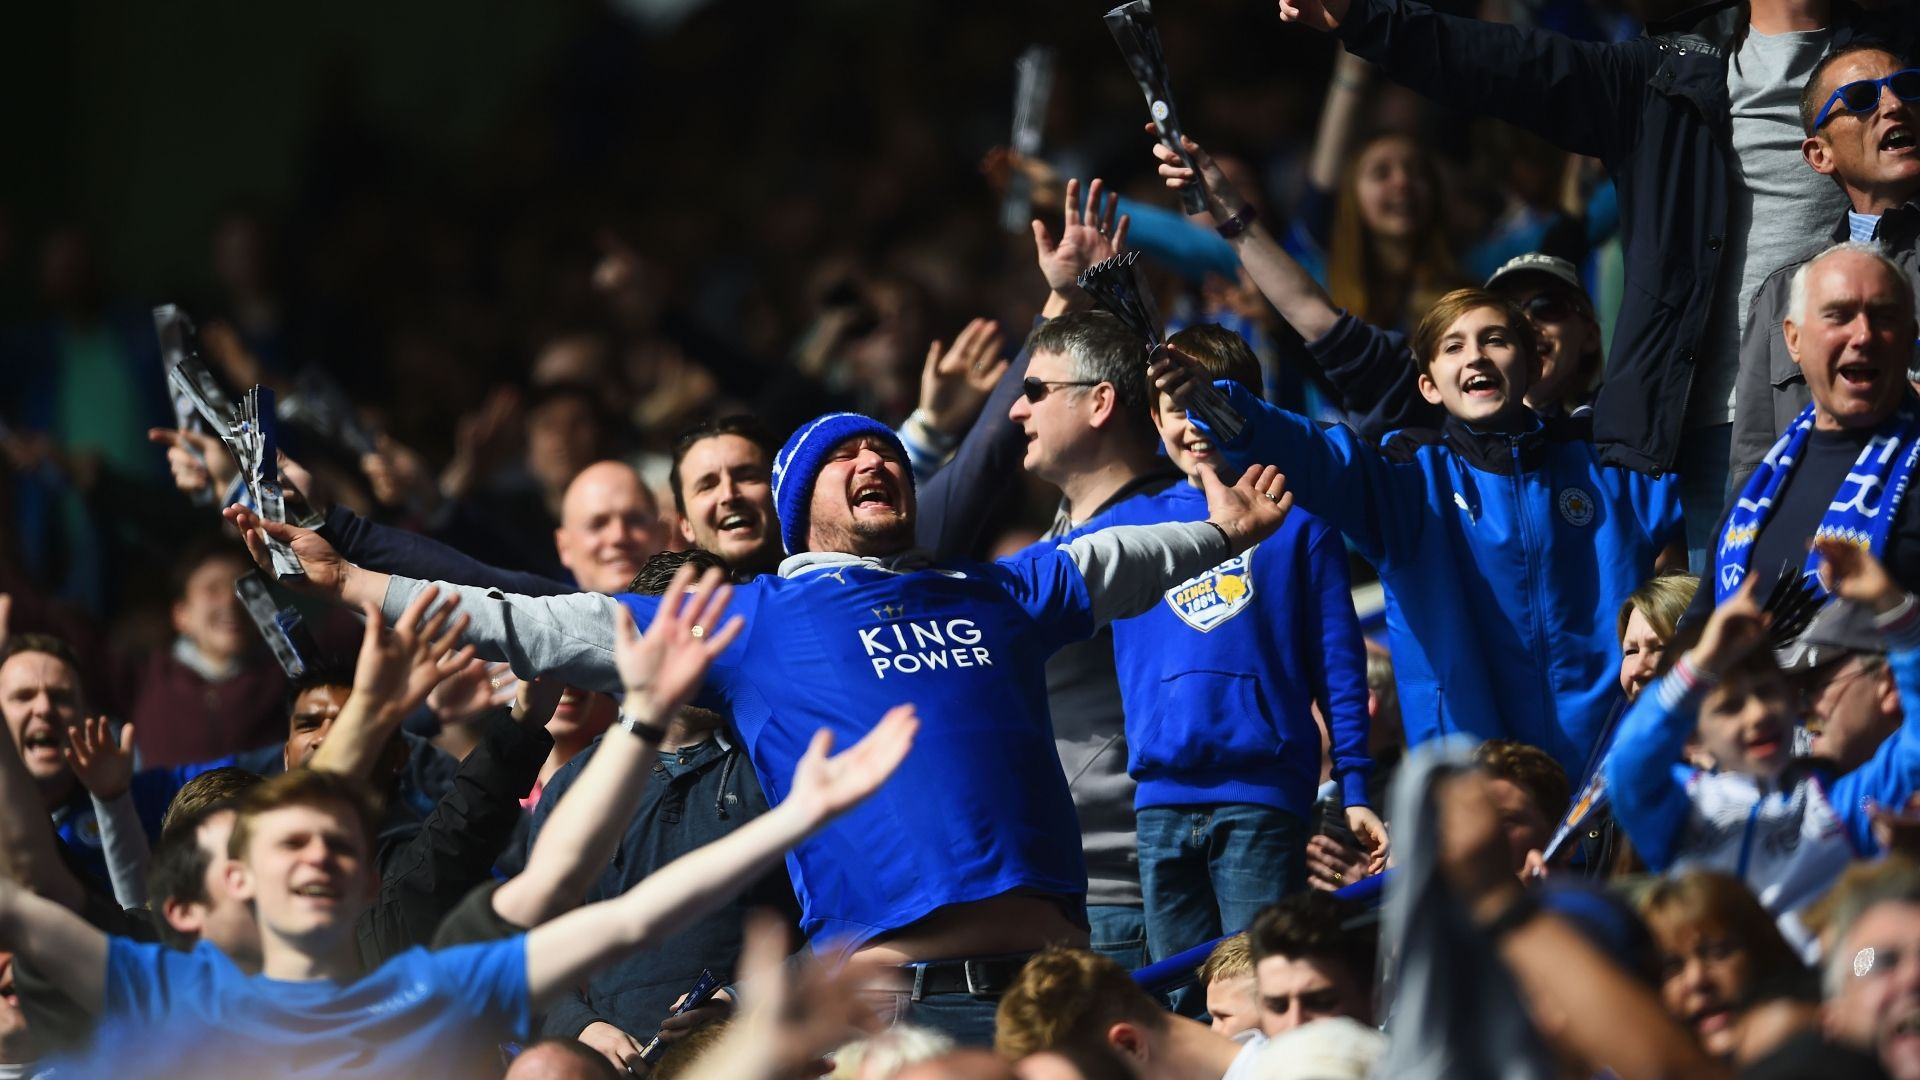 Leicester City win the Premier League title as Tottenham